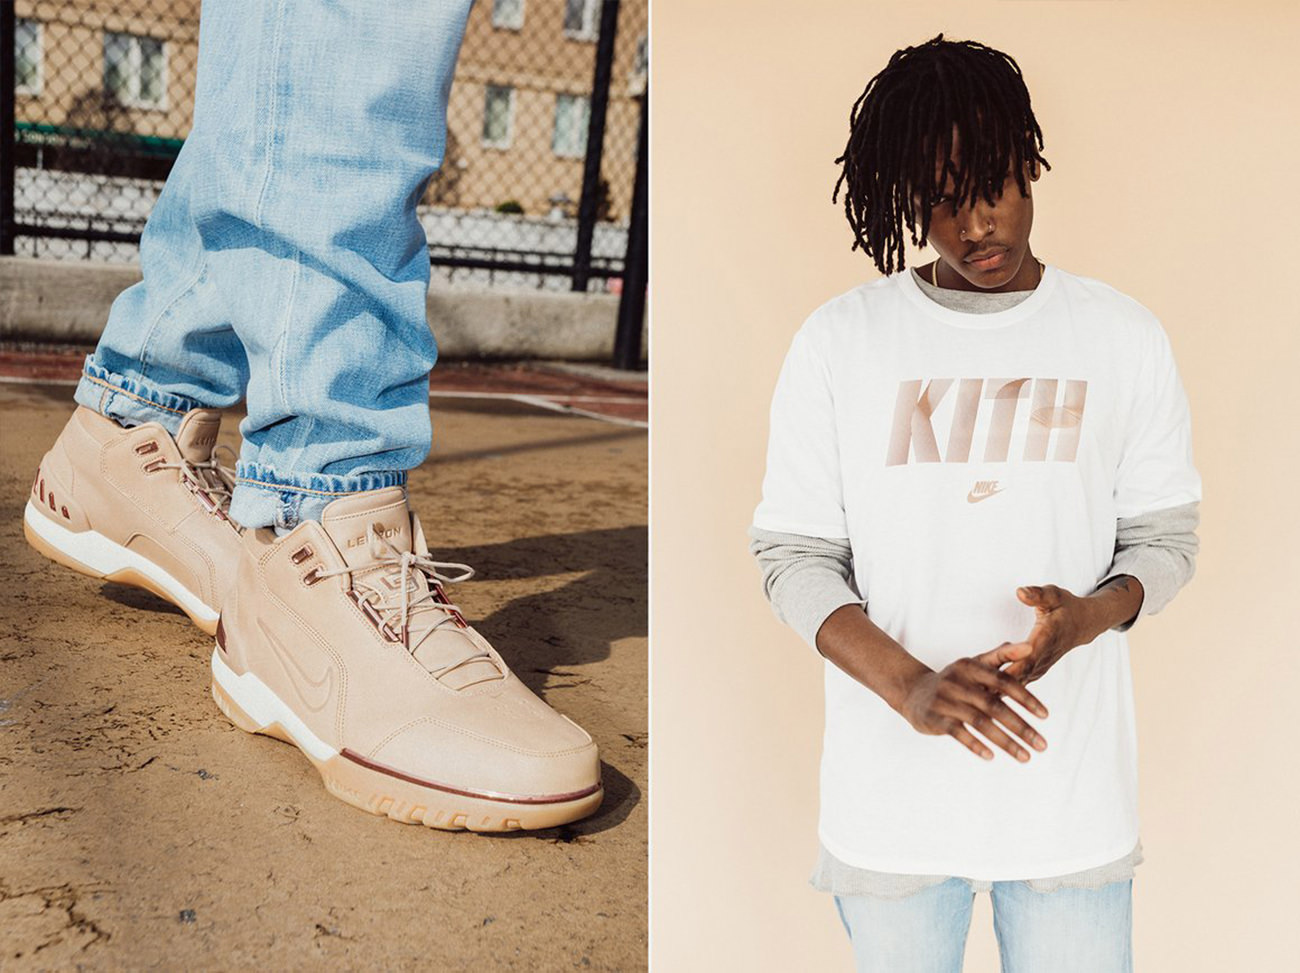 NIKE-5-Decades-Apparel-Collection-by-KITH-4